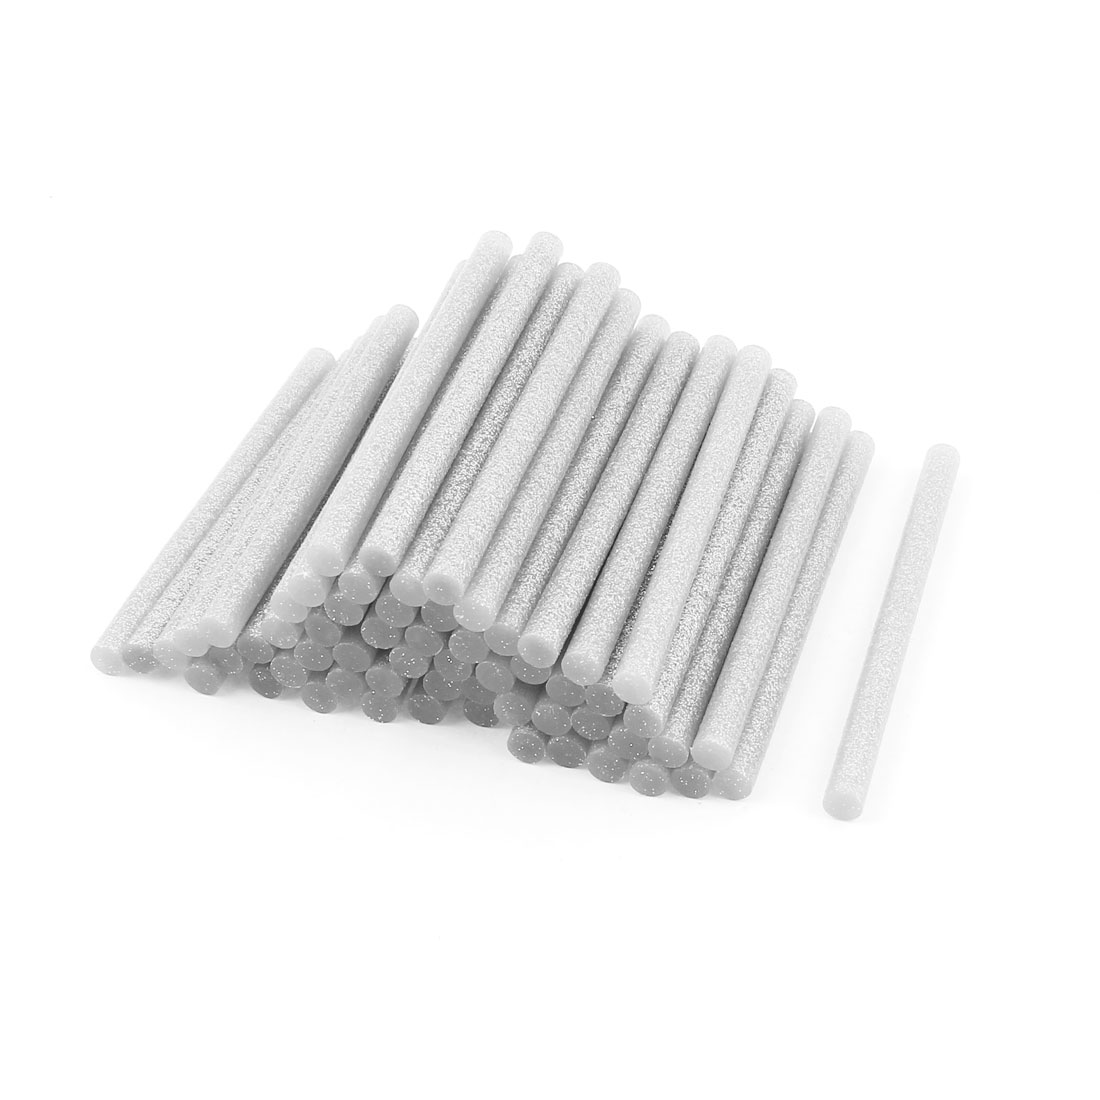 50 Pcs Silver Tone 7mm Diameter 100mm Length Crafting Models Hot Melt Glue Stick